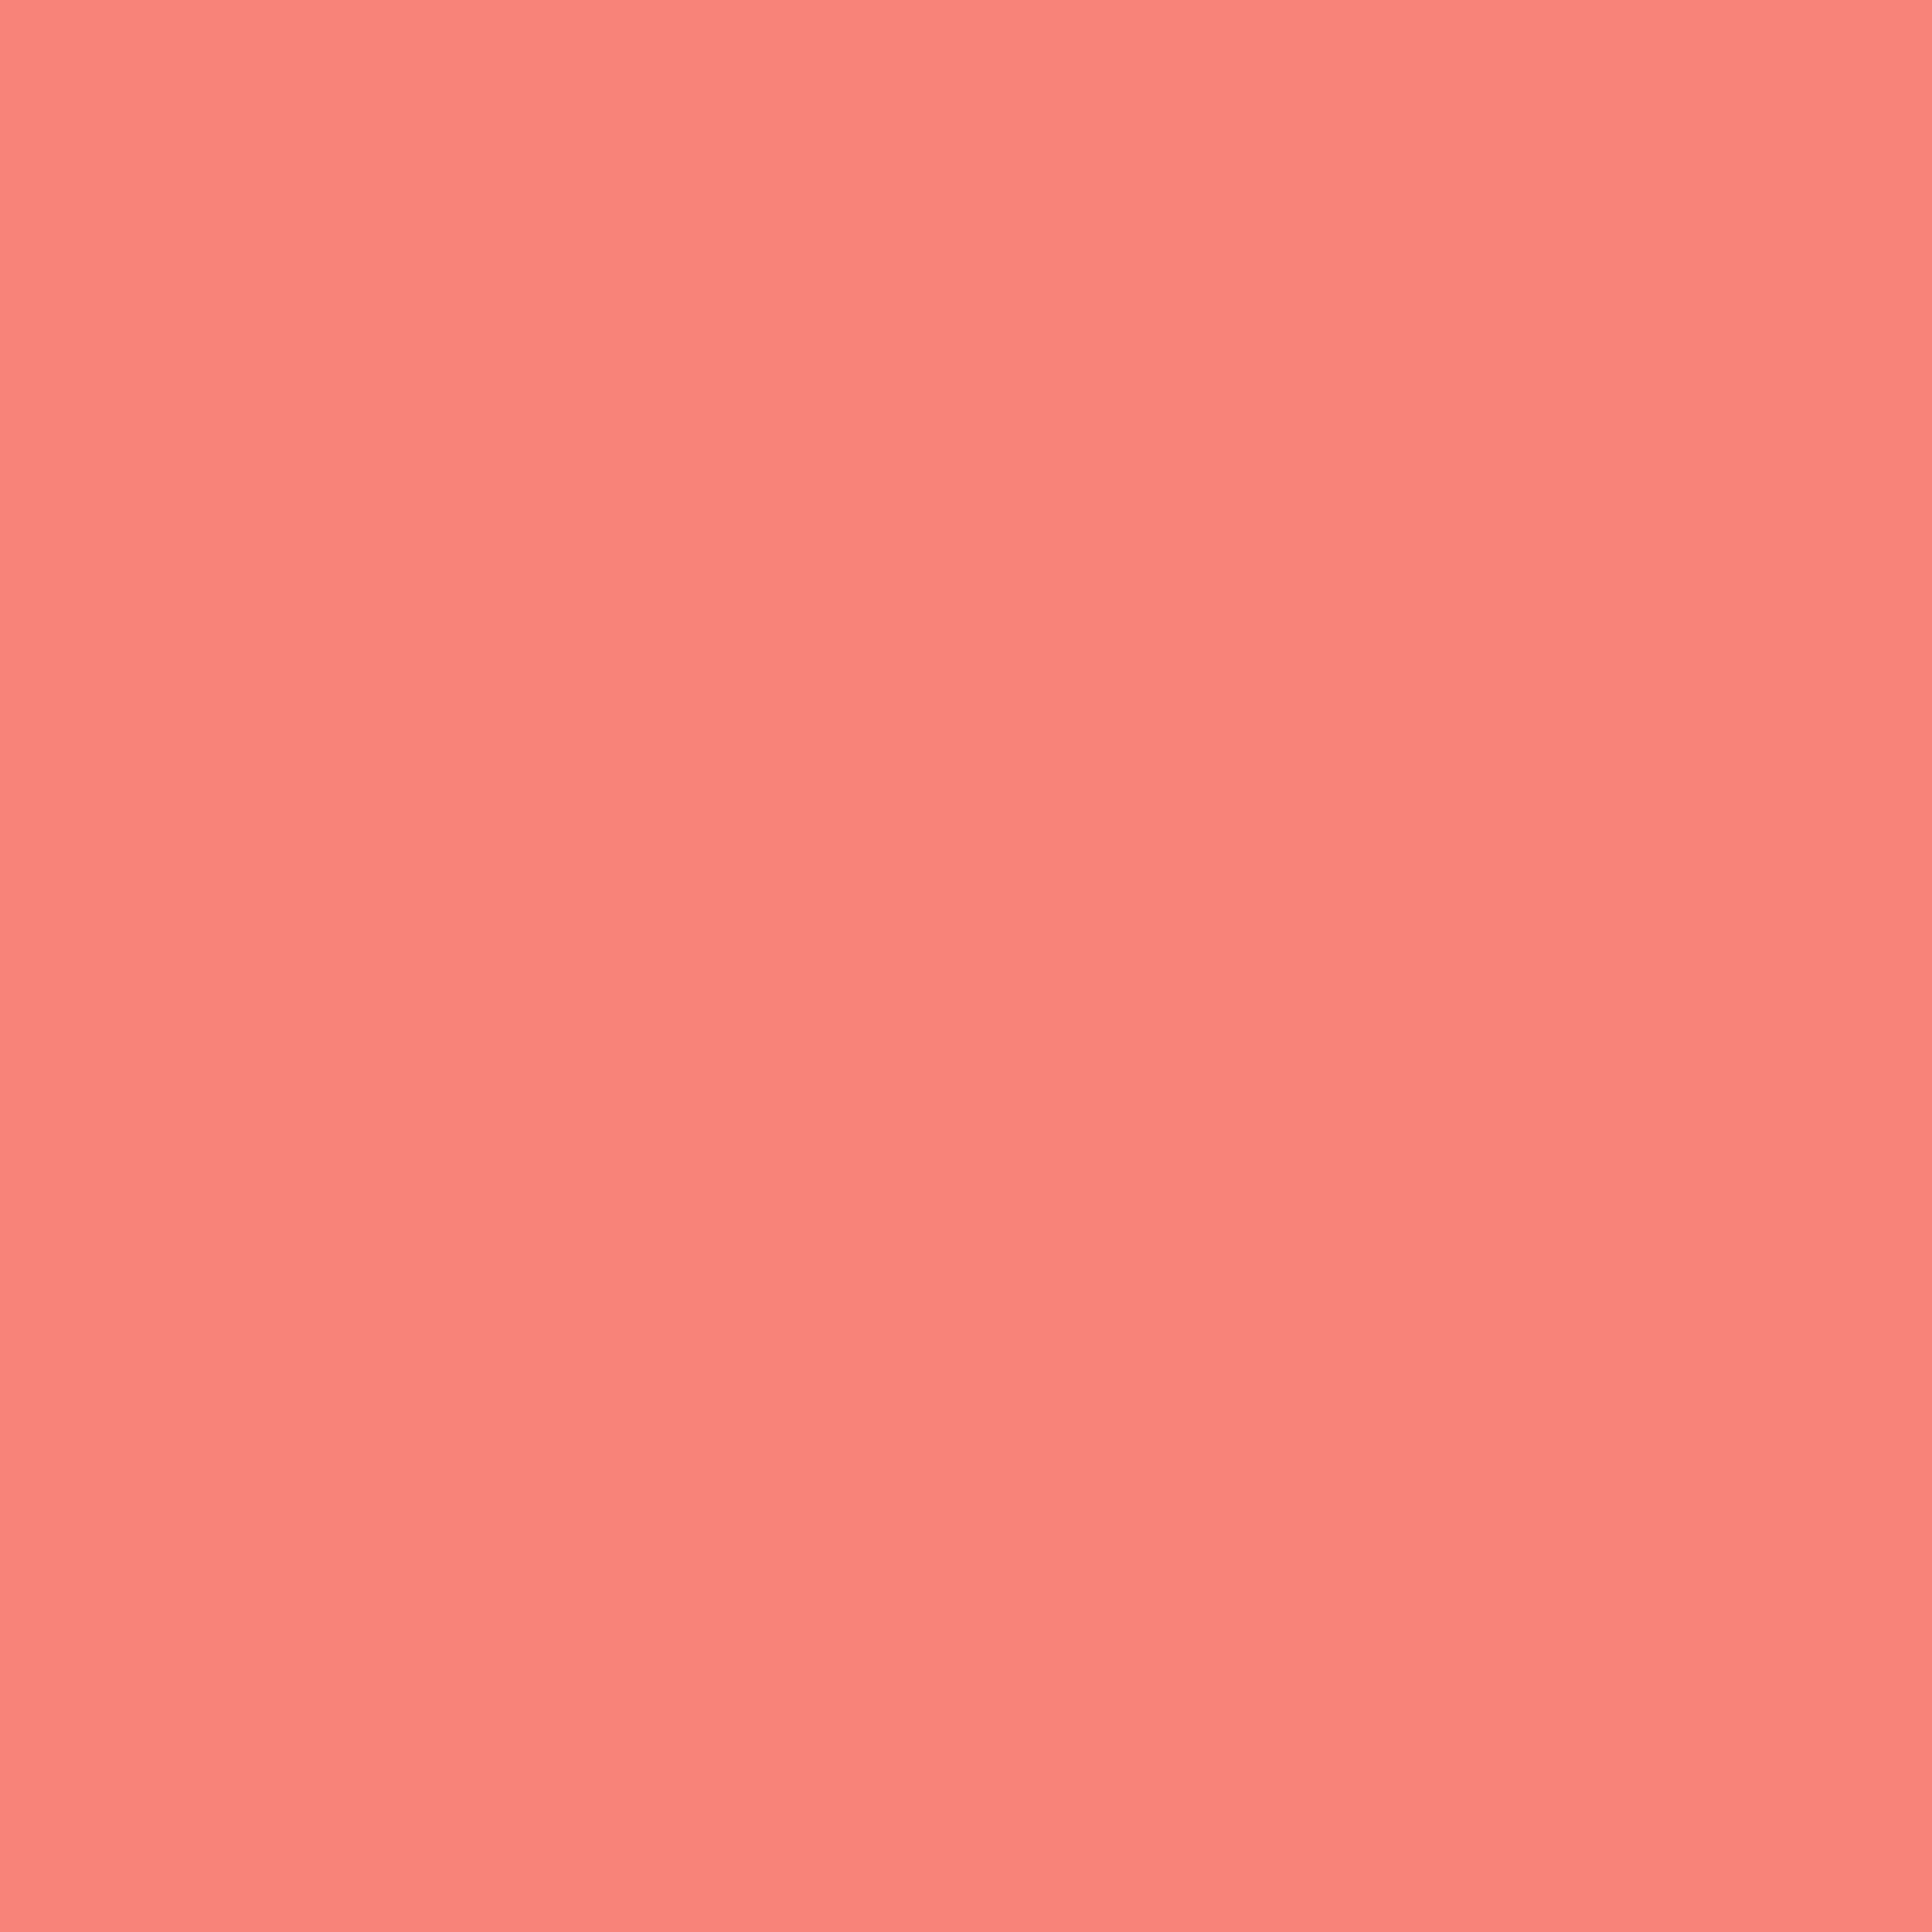 3600x3600 Tea Rose Orange Solid Color Background